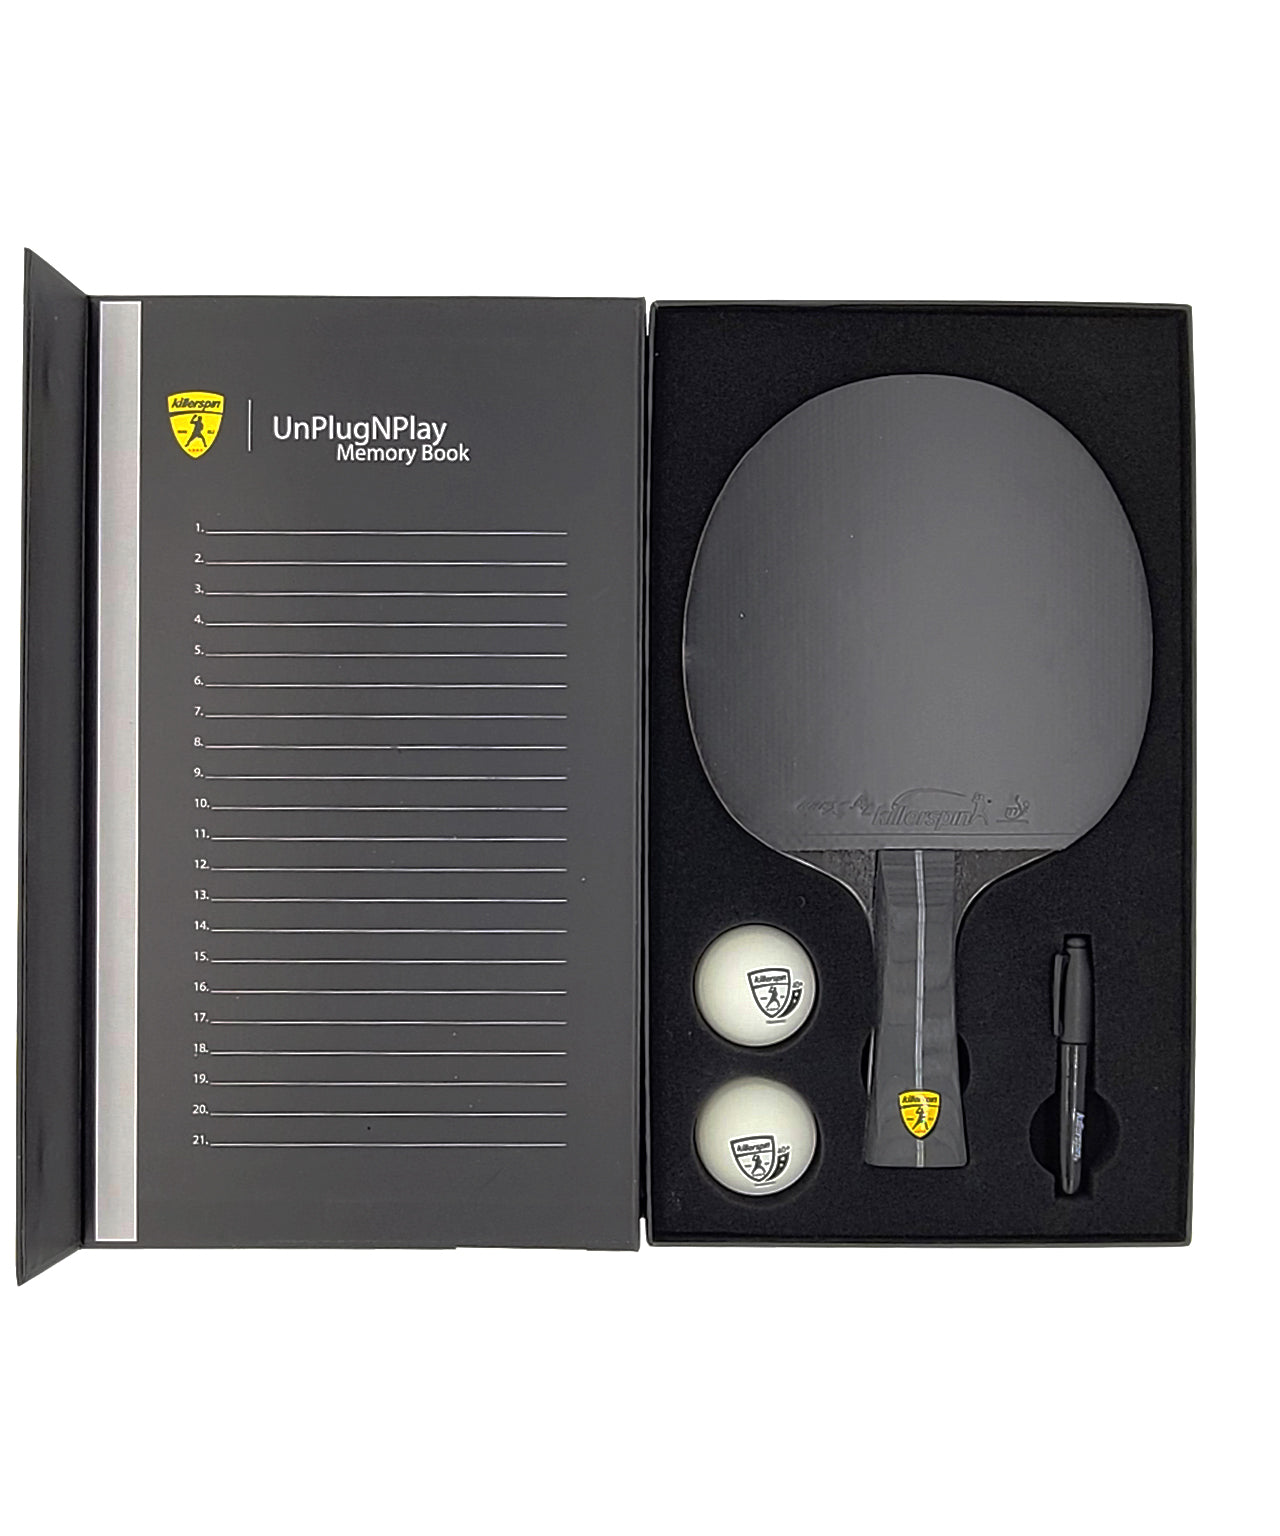 killerspin-ping-pong-paddle-impact-D9-smart-grip-memory-book-paddle-in-the-box